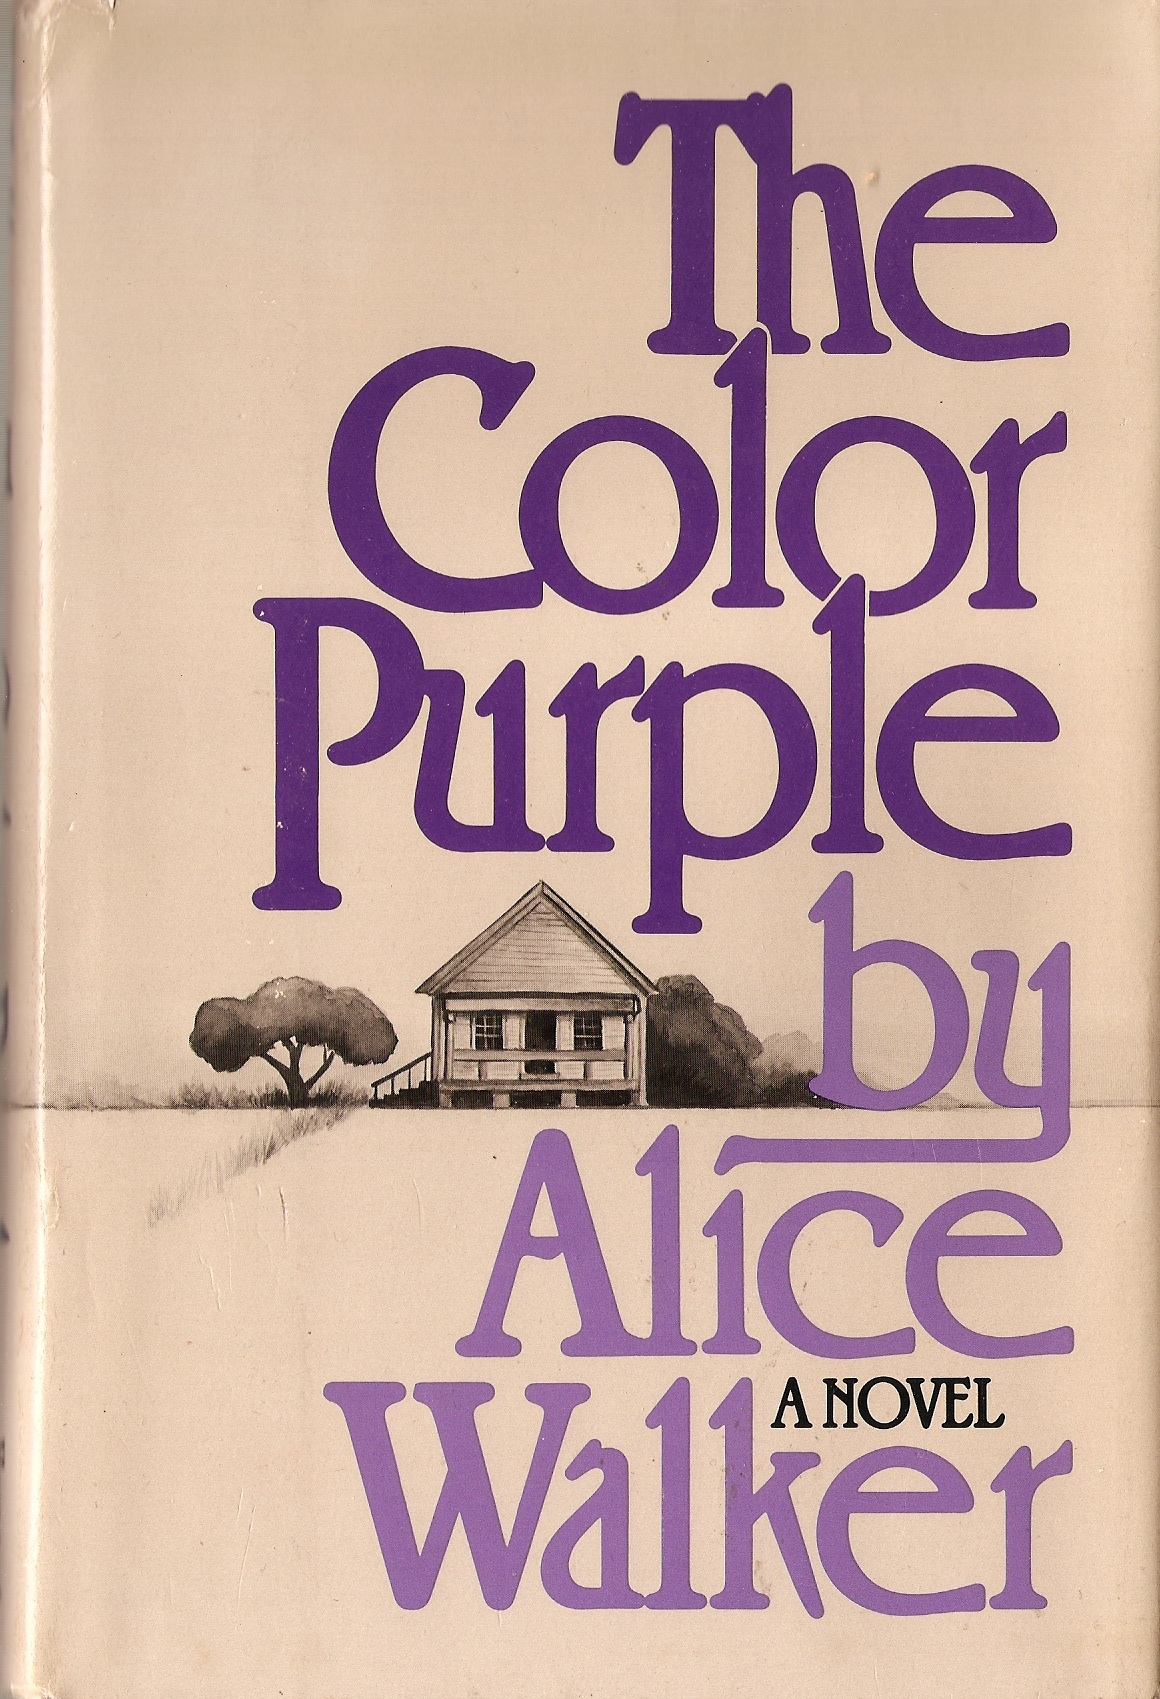 Georgia: The Color Purple by Alice Walker